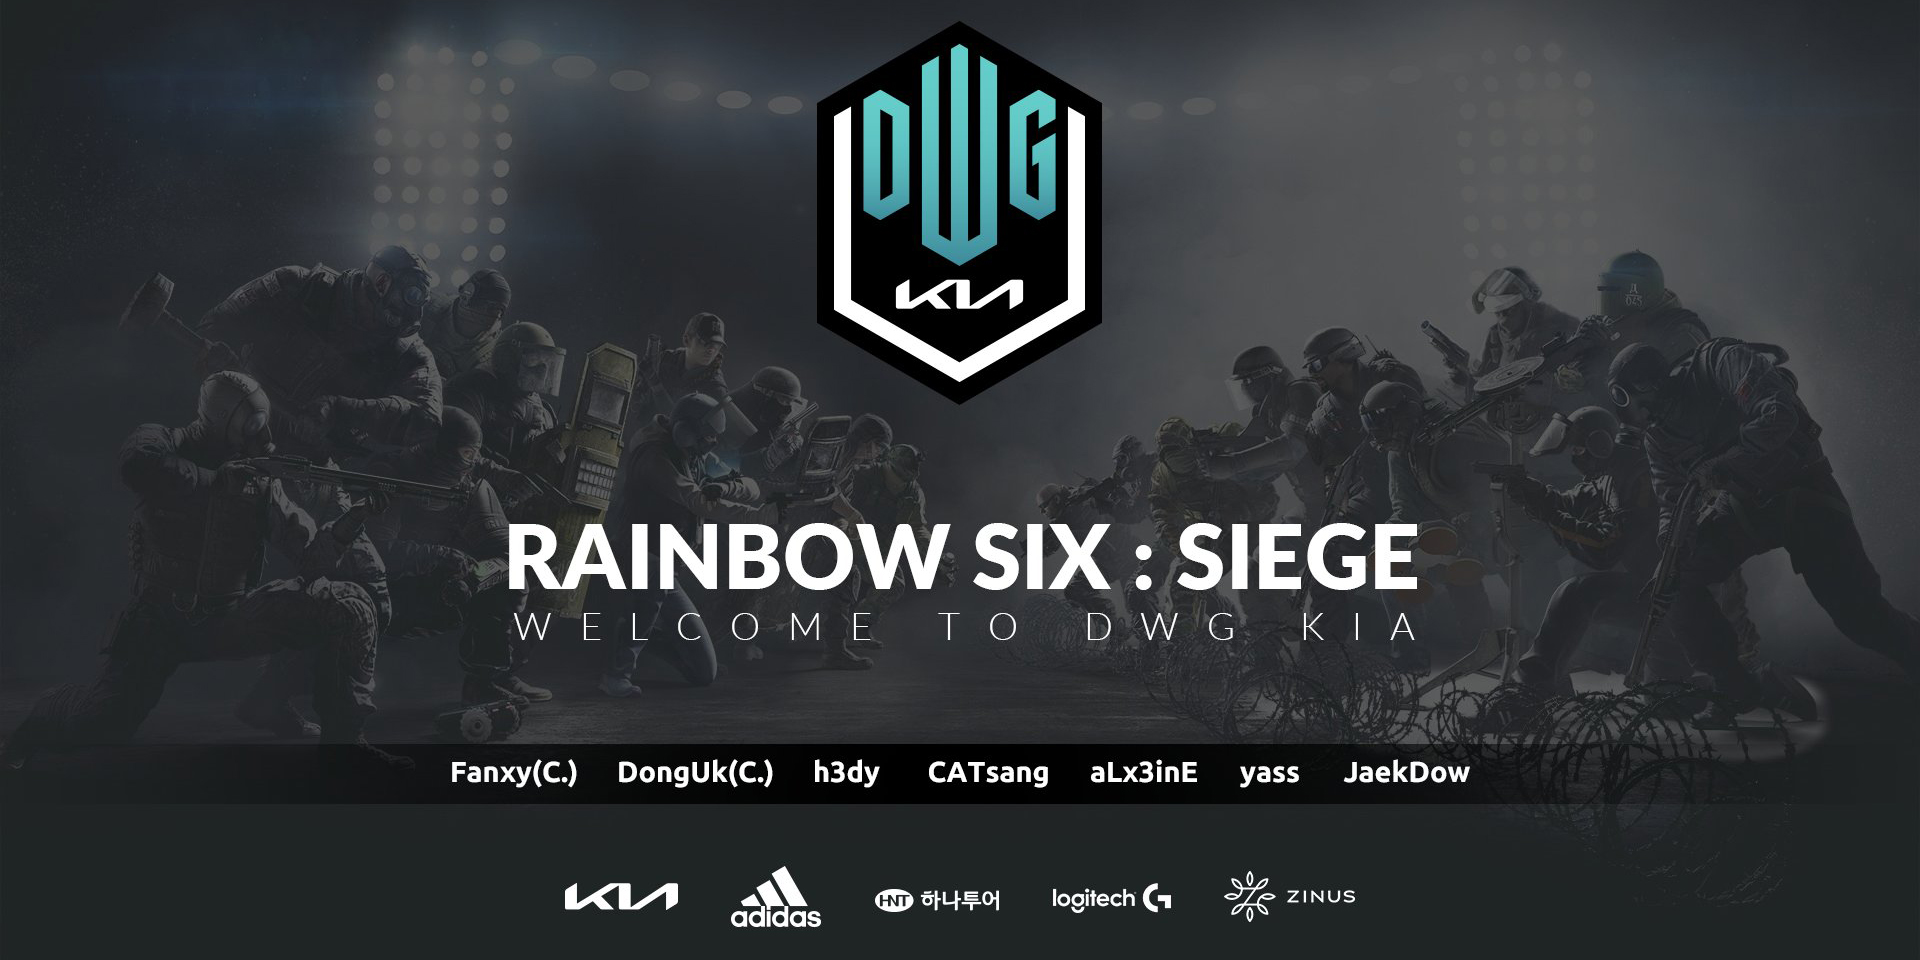 DWG KIA Drops h3dy, JaekDow, Fanxy, and DongUk, Remaining Players Retained